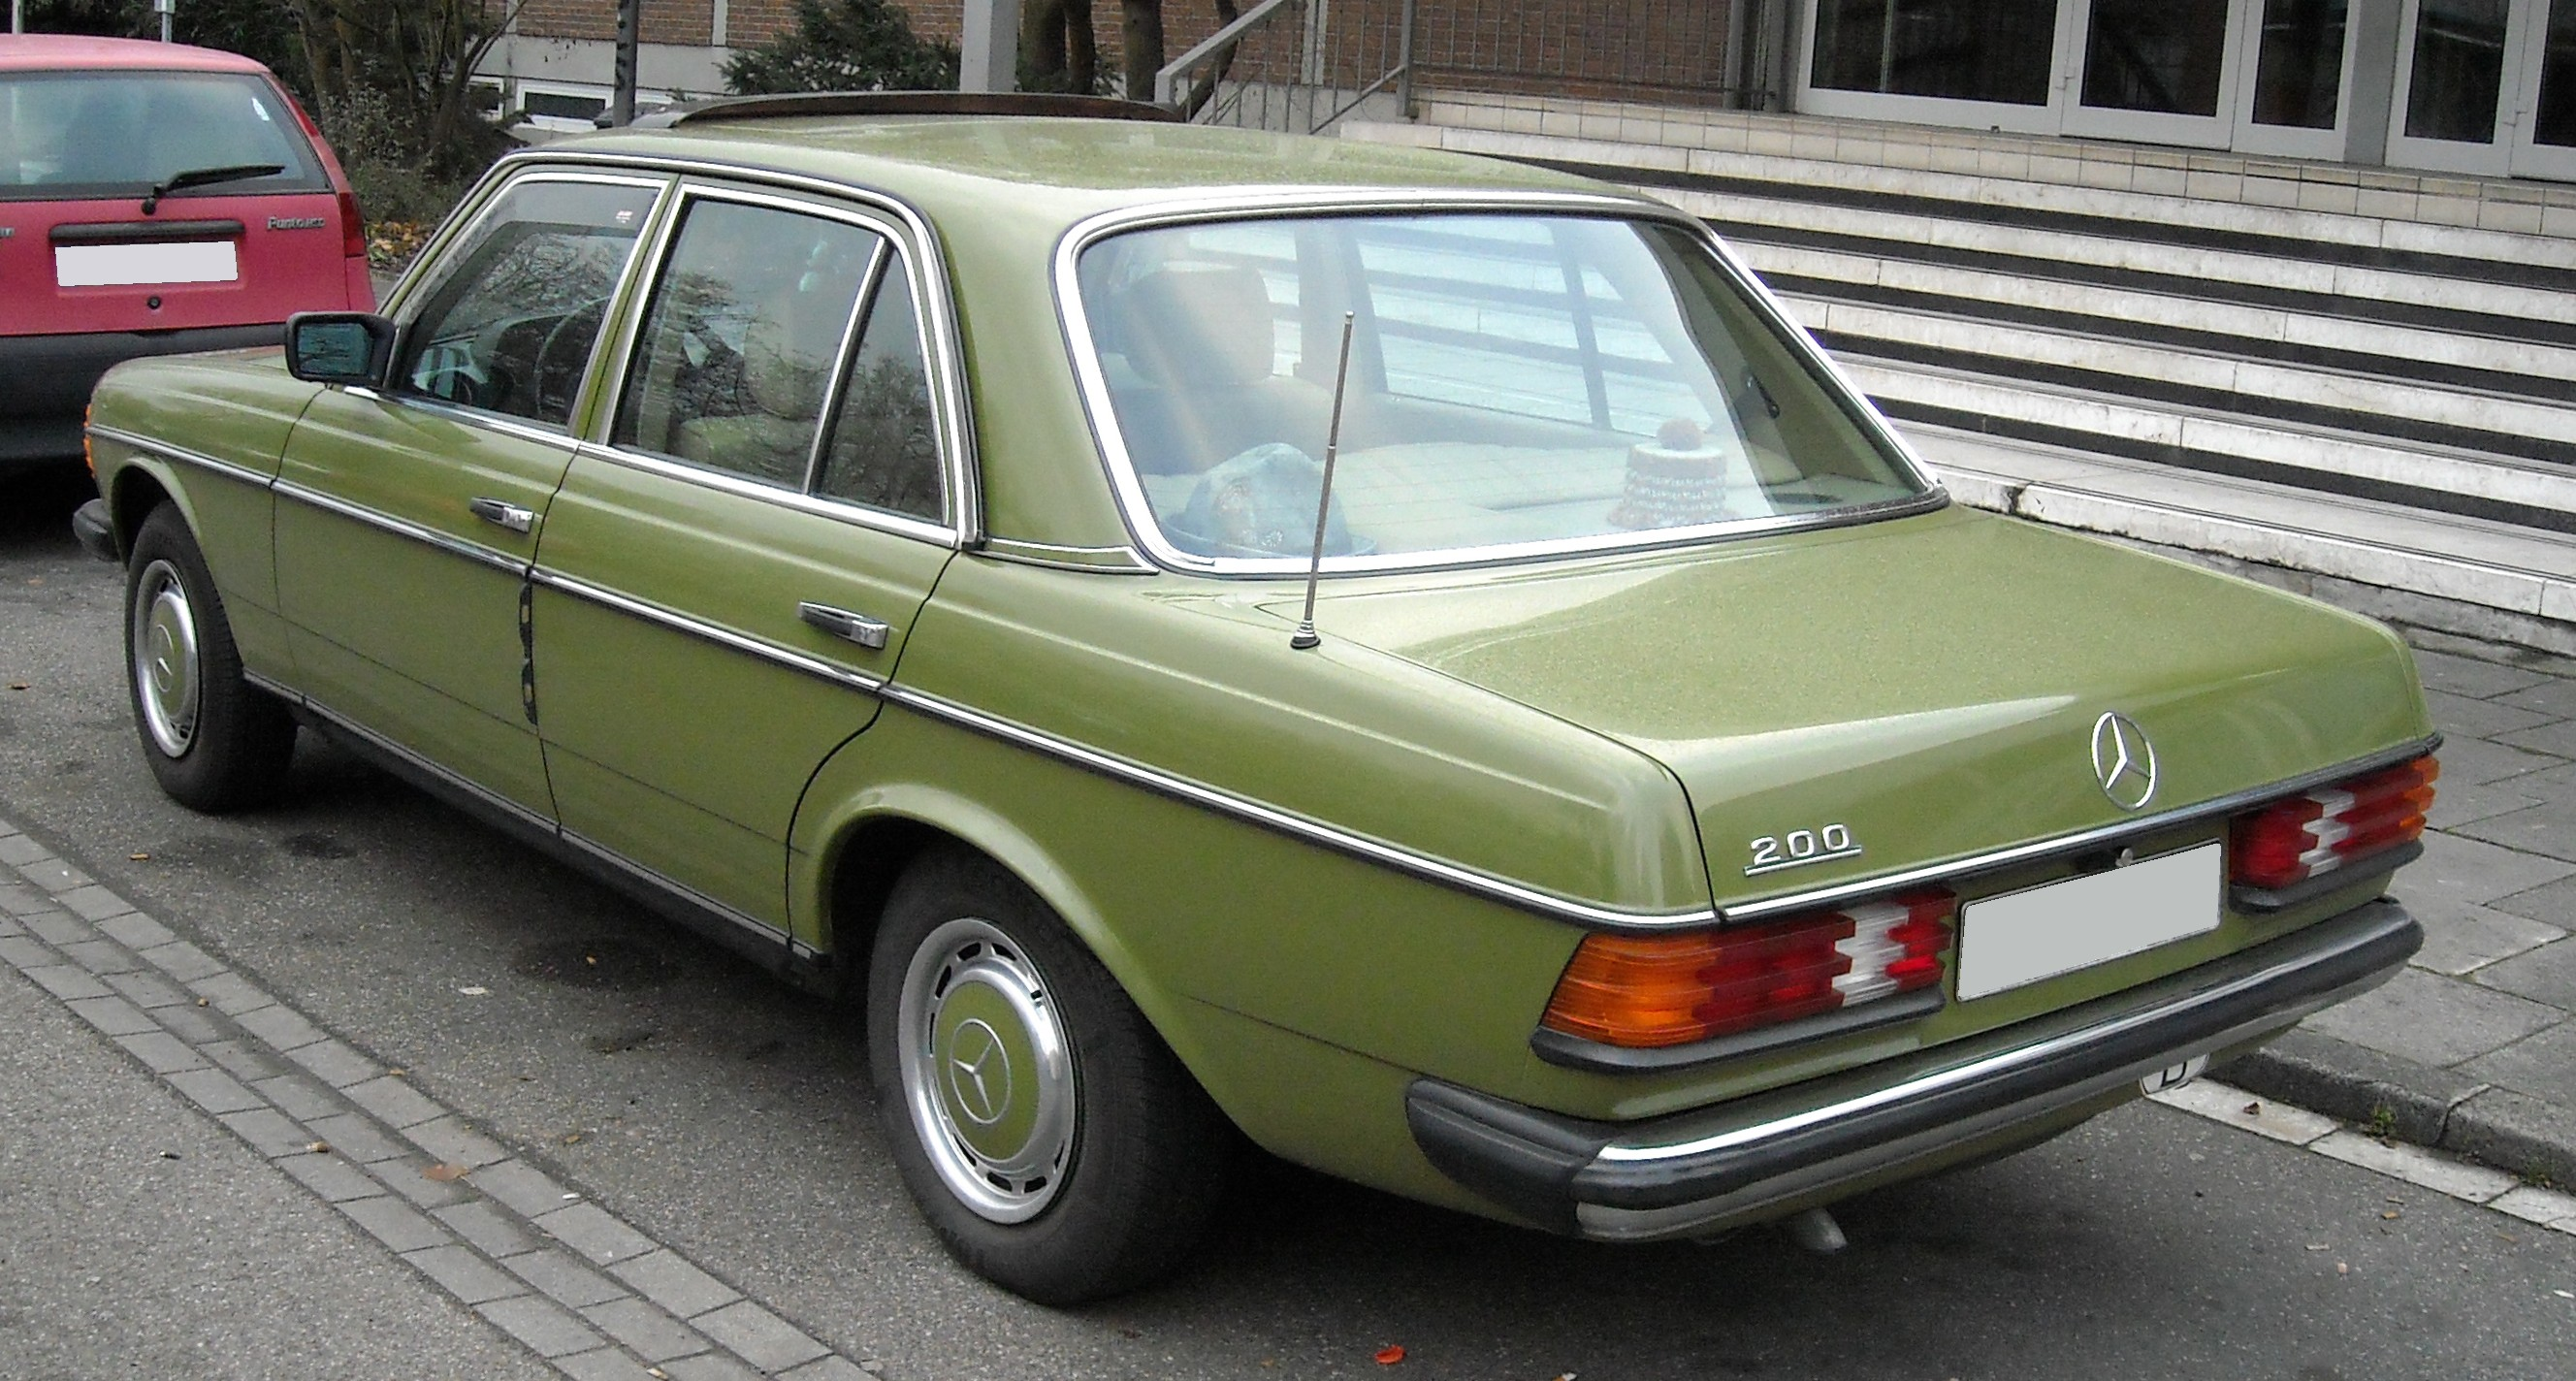 file mercedes benz w123 rear wikimedia commons. Black Bedroom Furniture Sets. Home Design Ideas